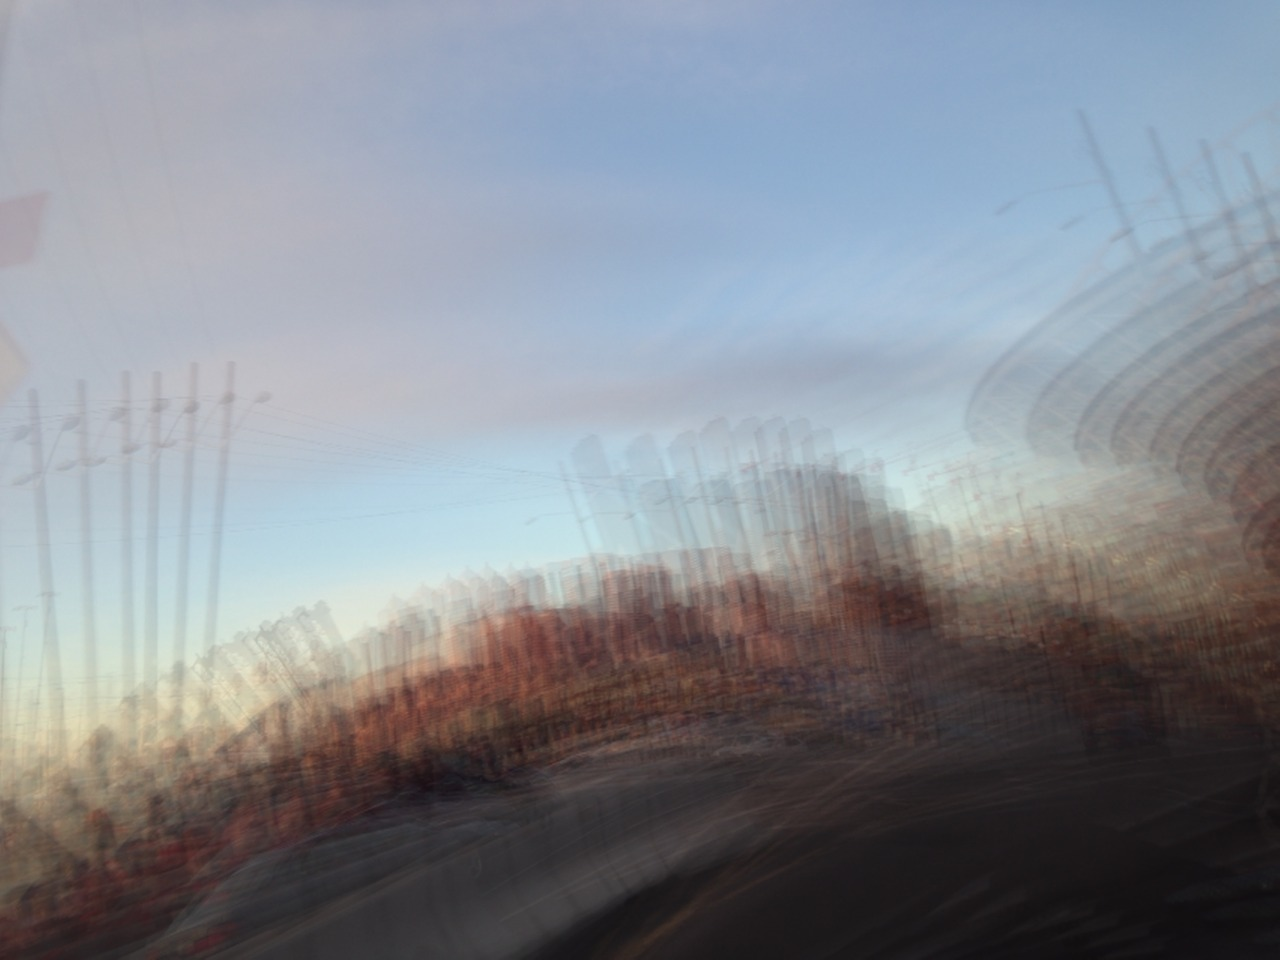 candidstreet:  Commute Nine  Slow Shutter Experiments Photo by tsparks